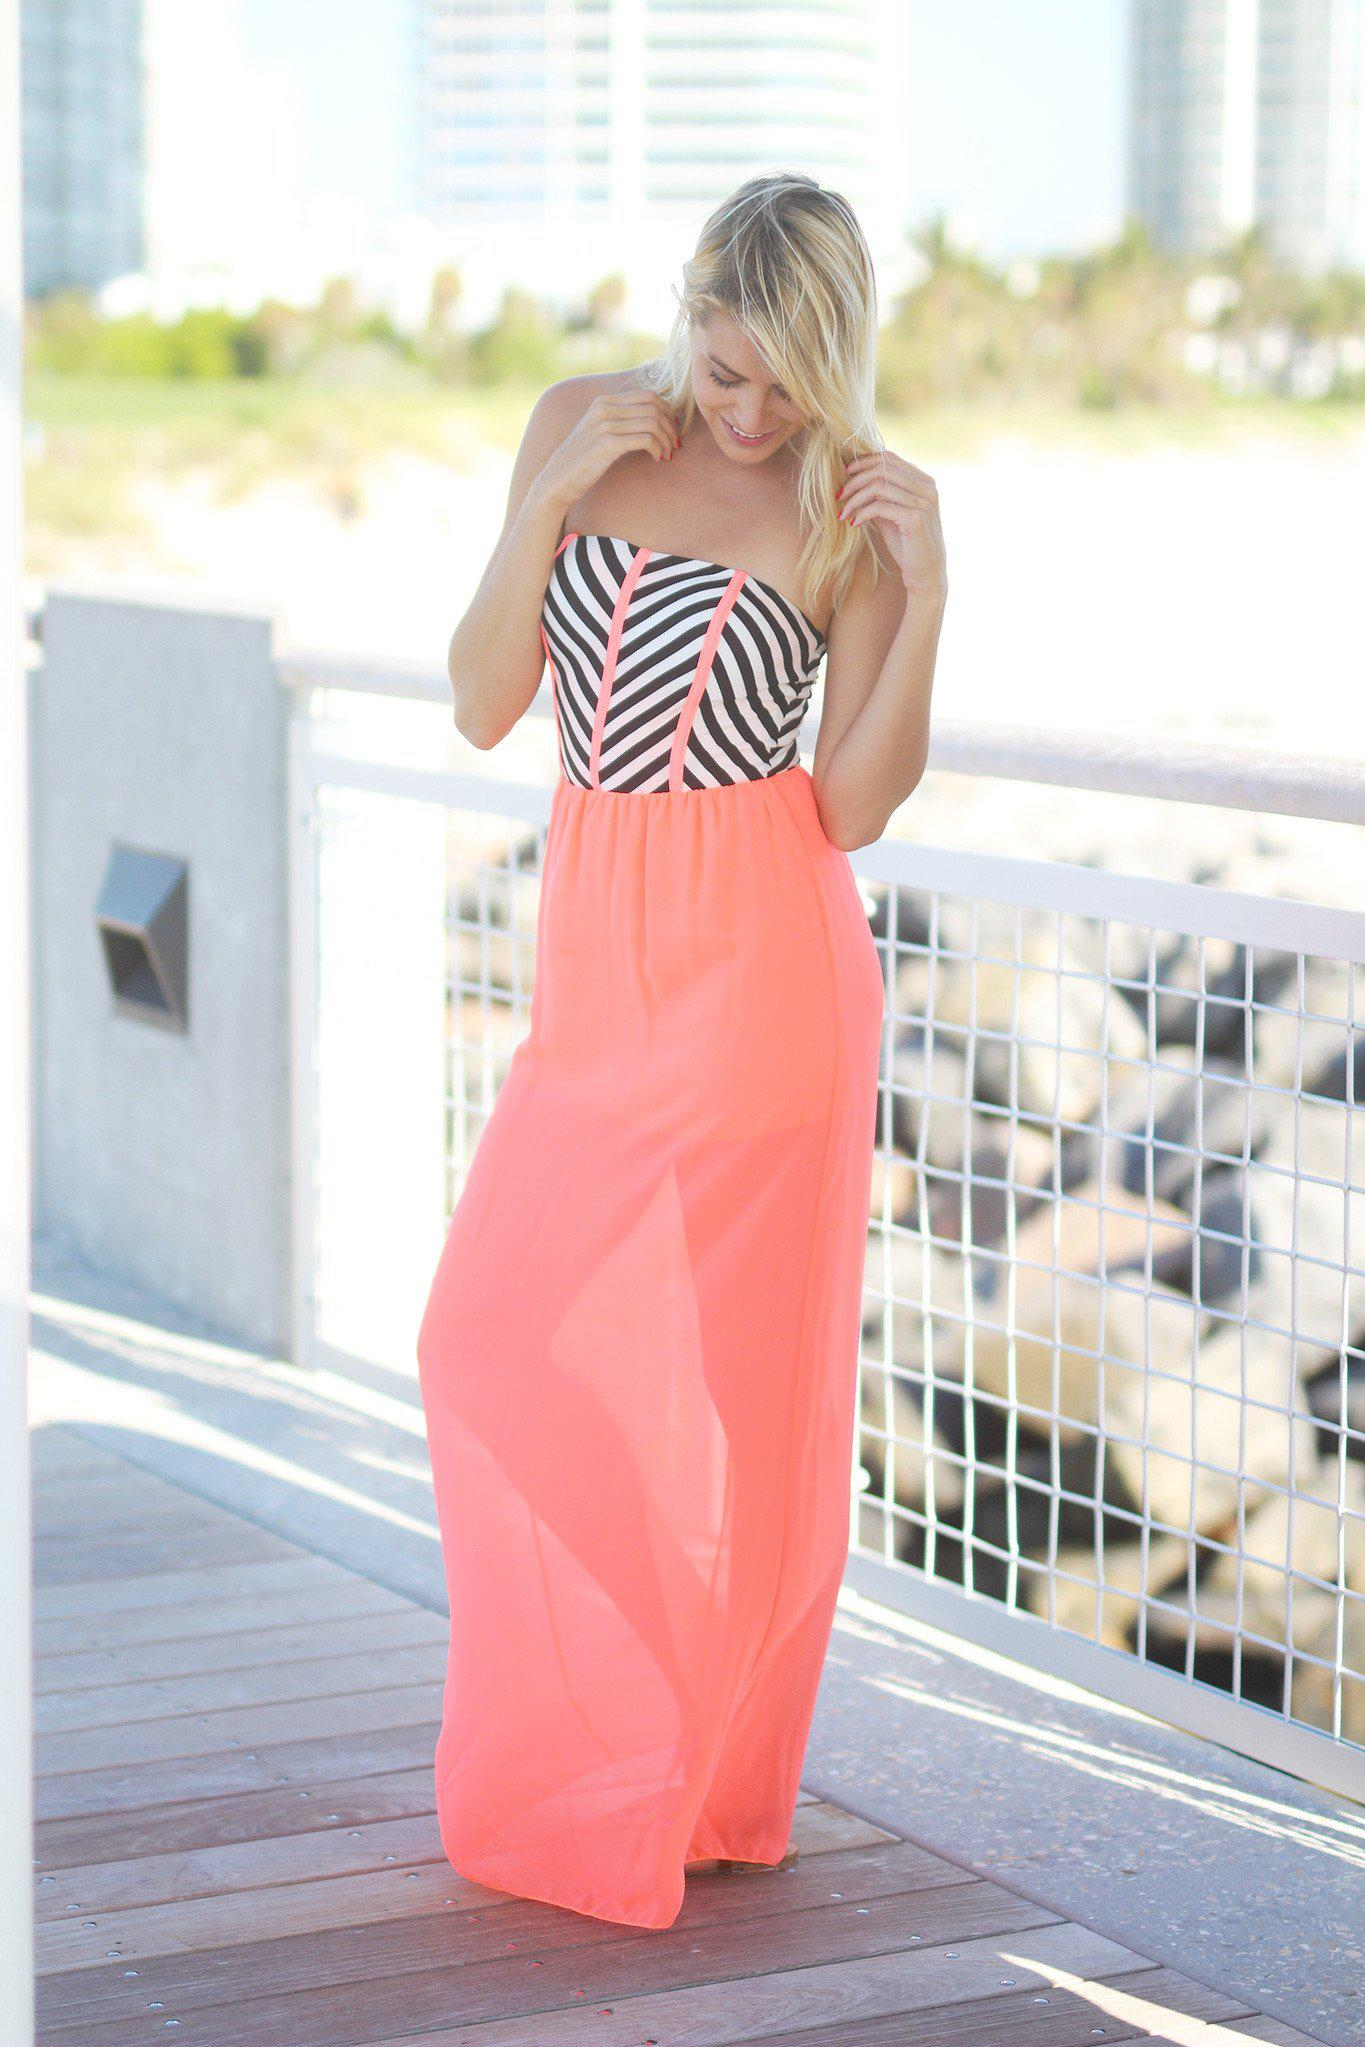 Neon Coral Maxi Dress with Striped Top